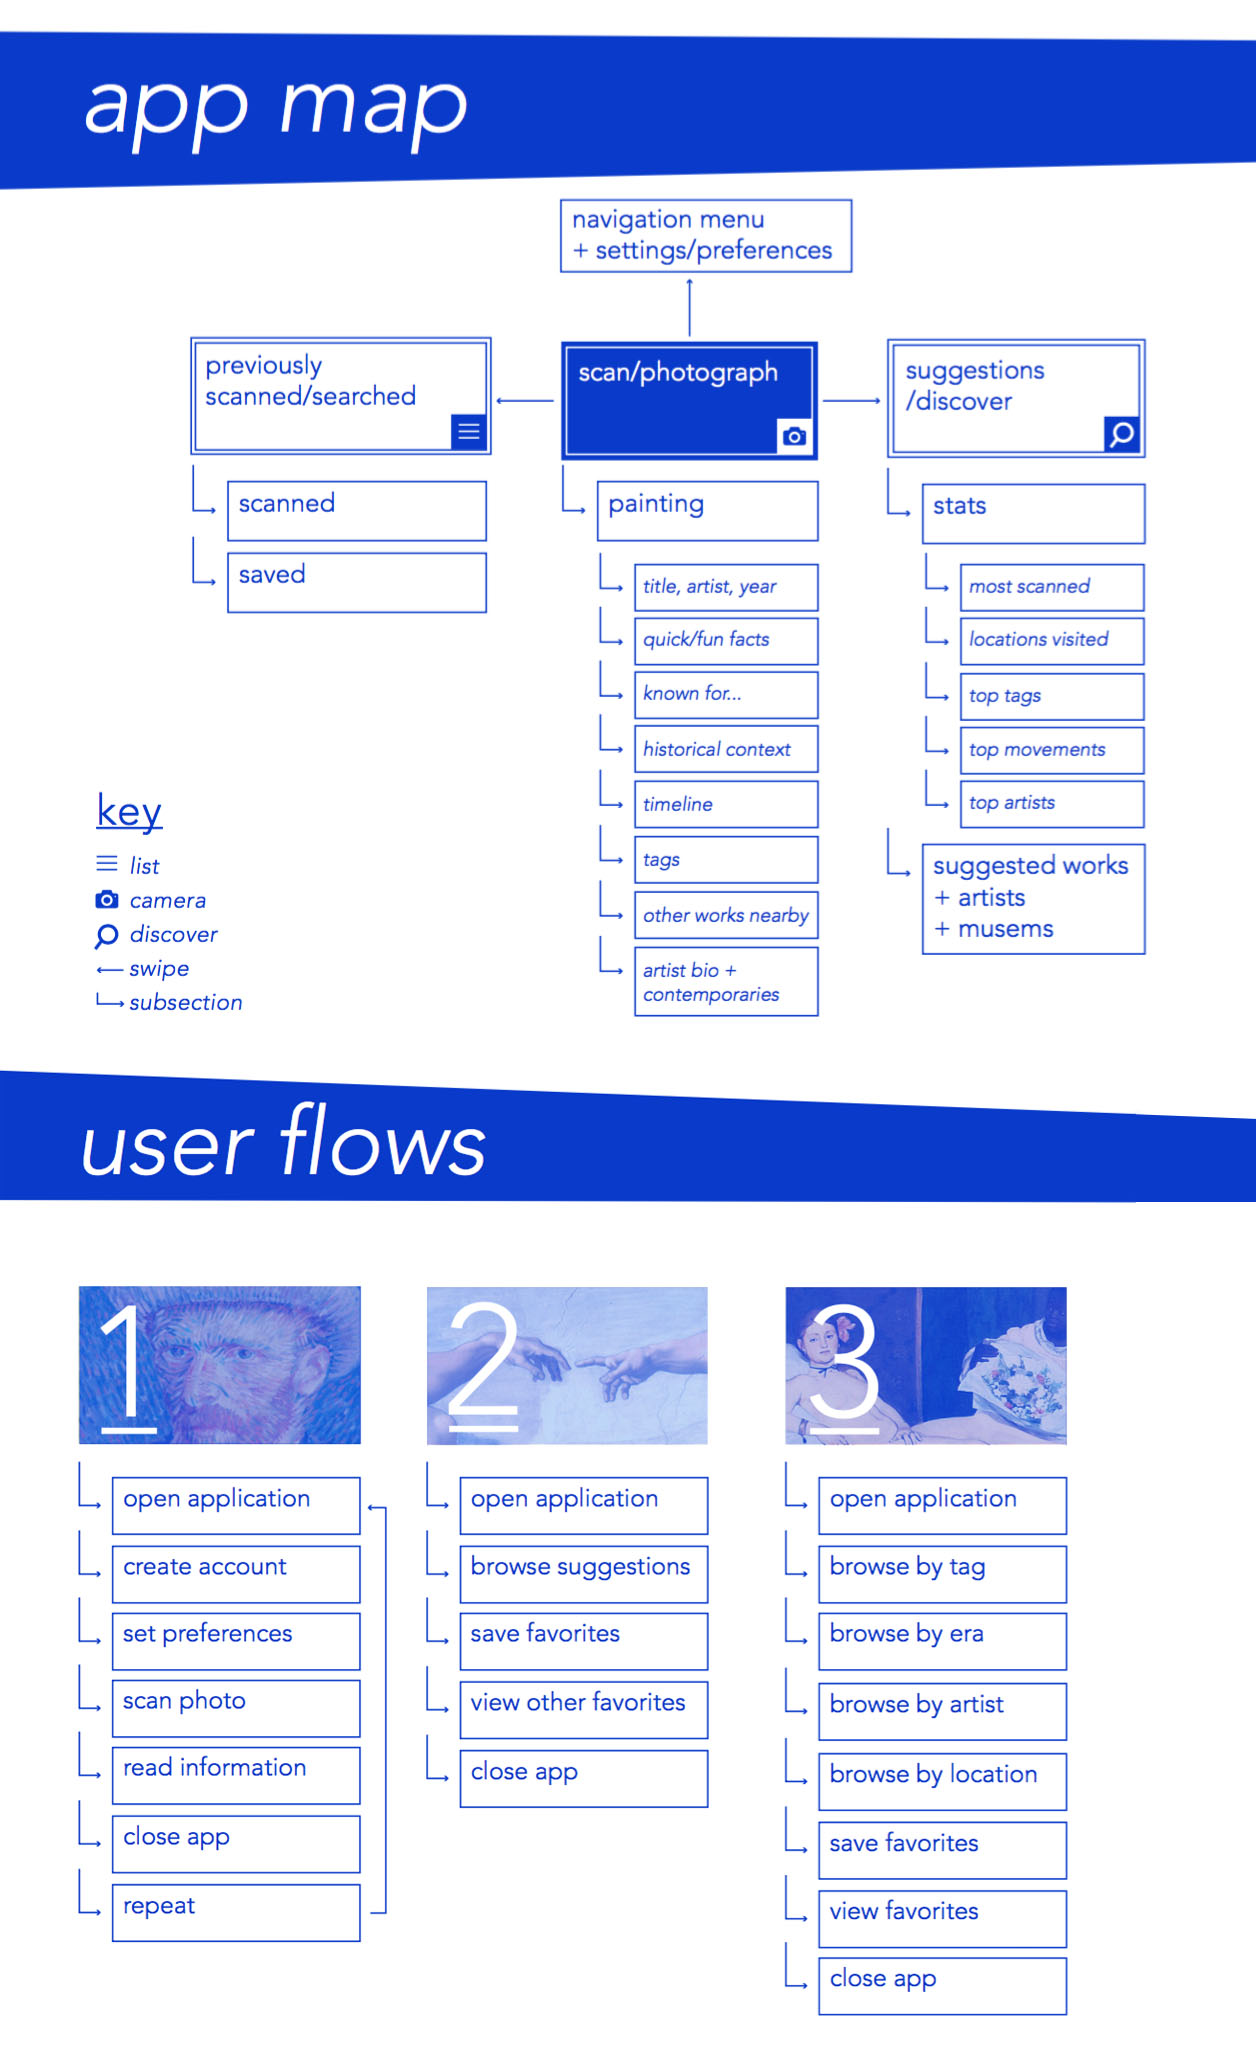 The app map lays out all the possible views a user can navigate to within the application. The user flows outline possible page-to-page experiences of any given viewer.